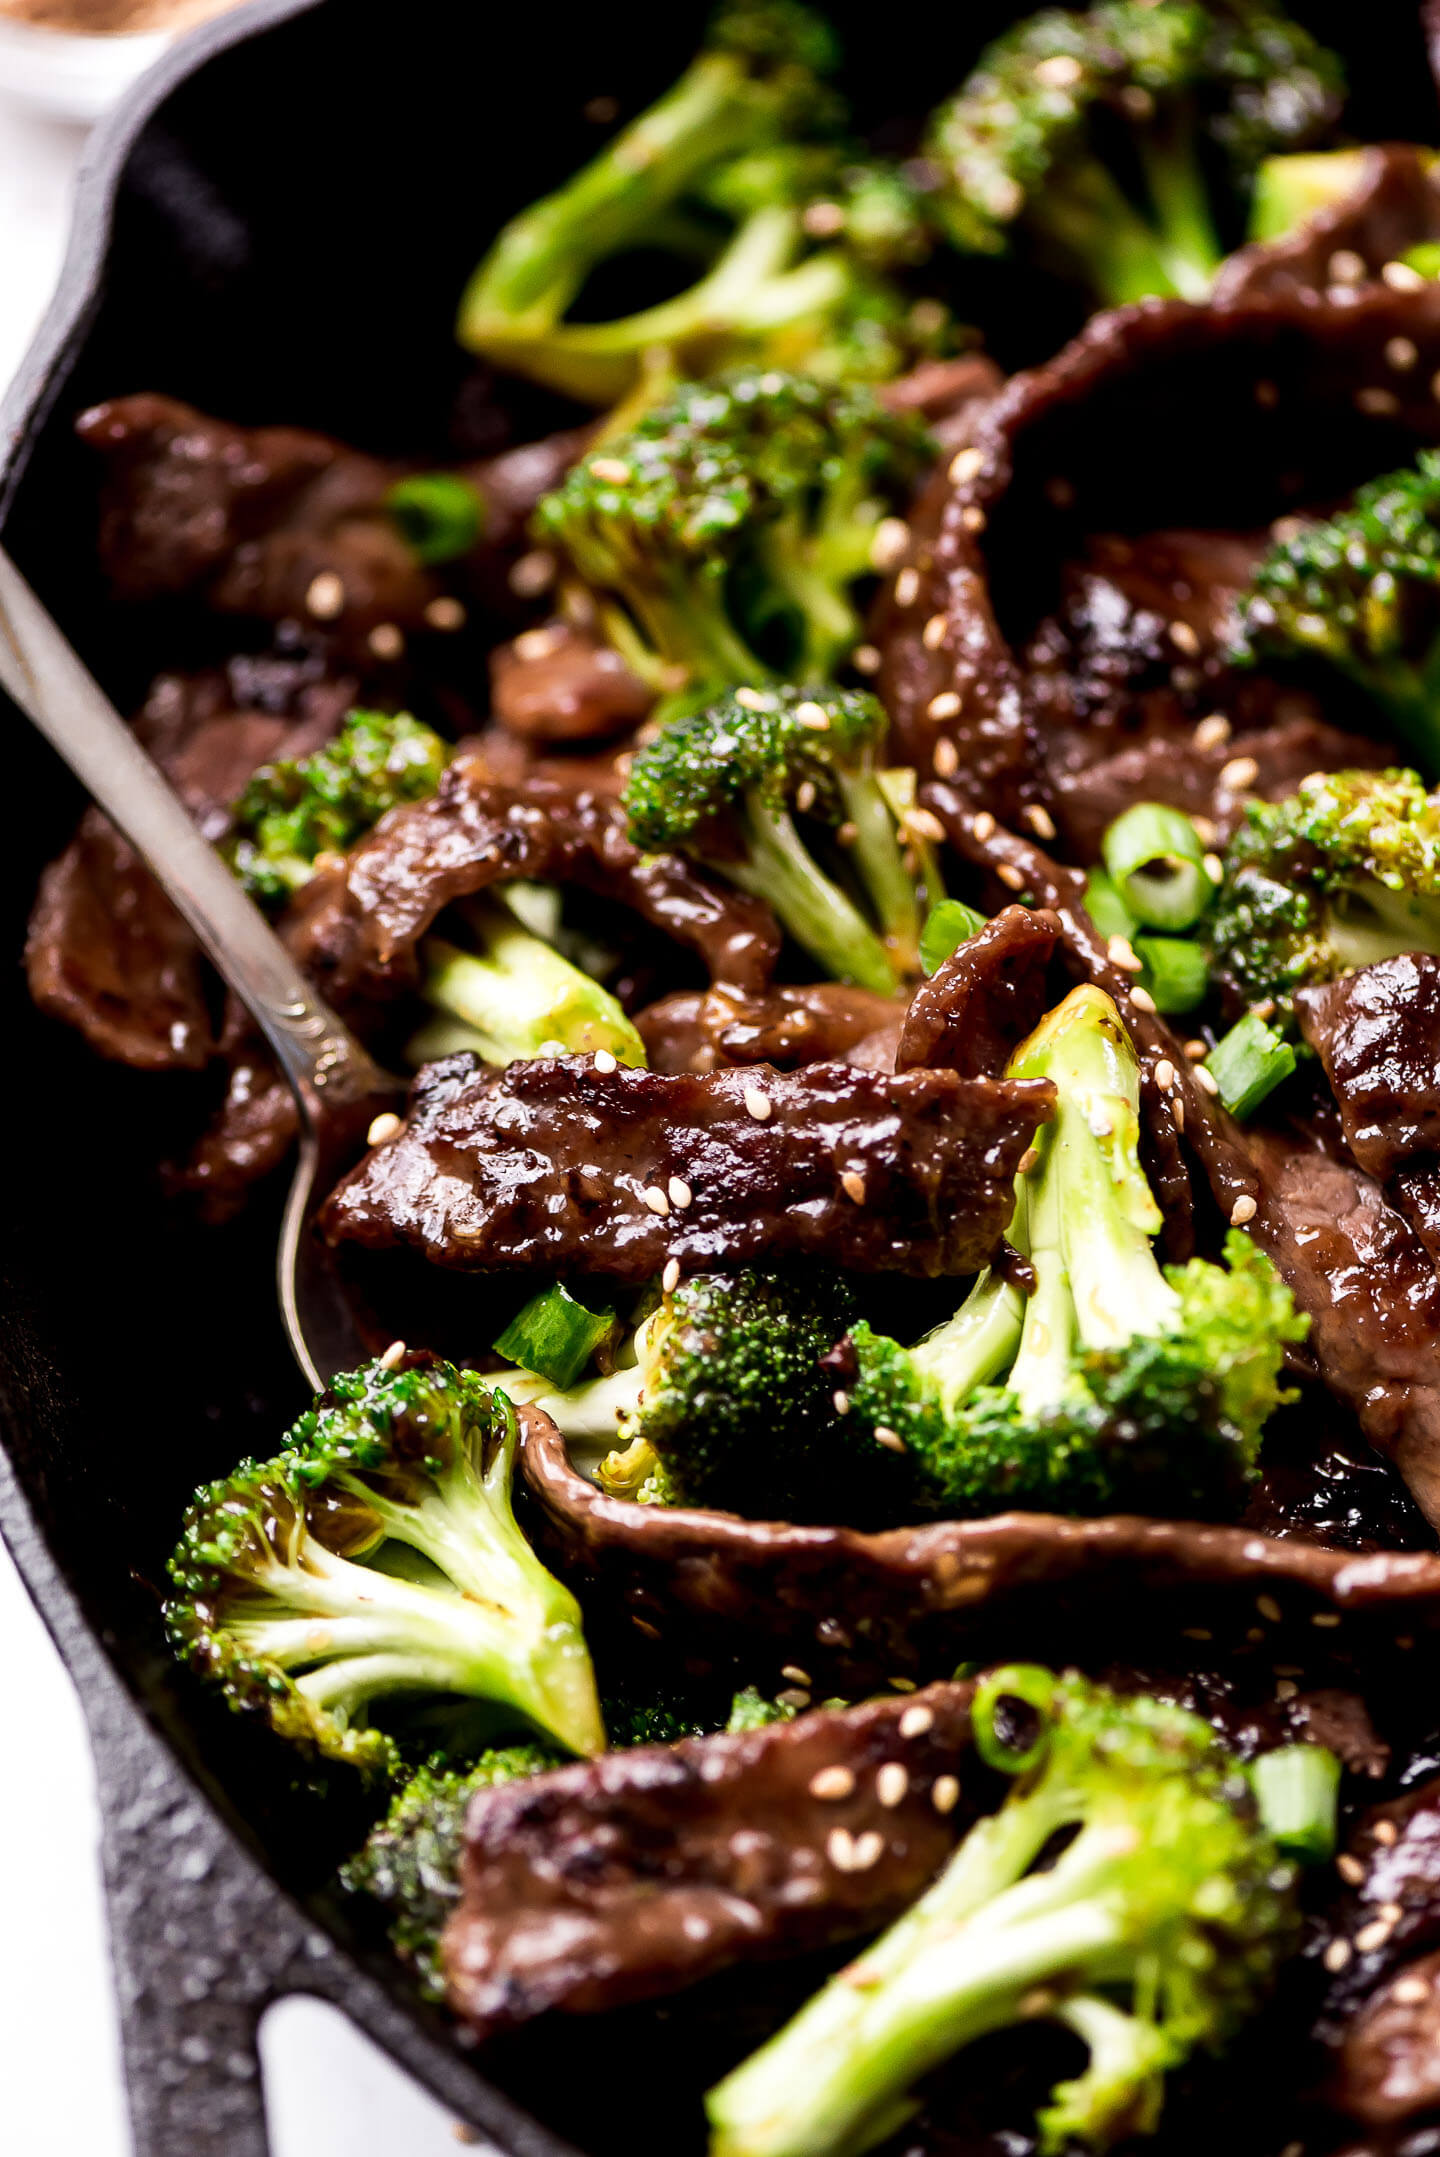 A close up shot of thin strips of Beef and Broccoli in a skillet.